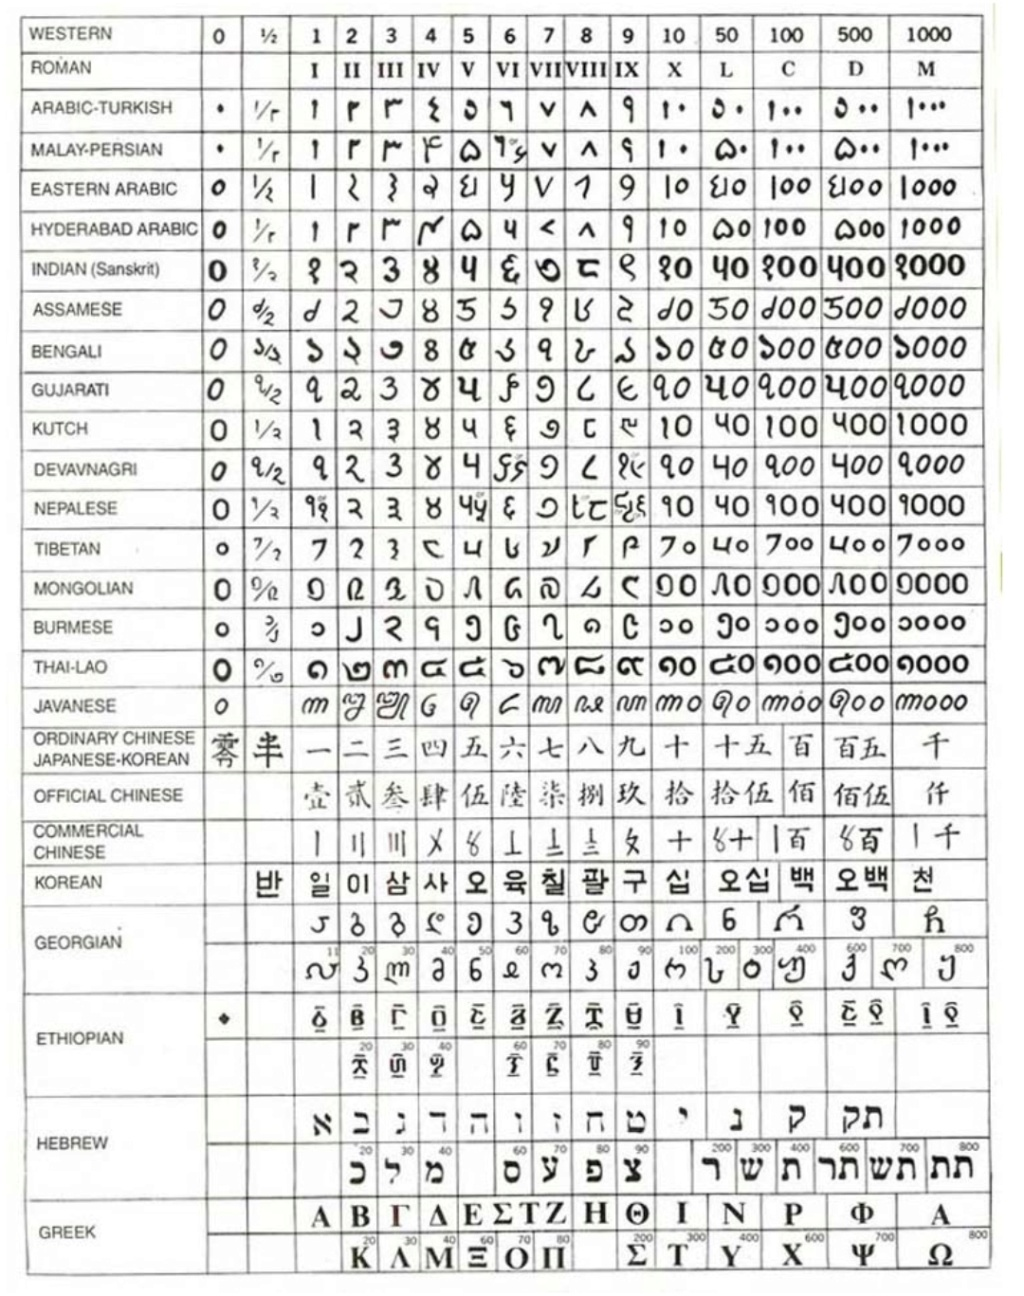 Tabla para convertir numeros Screen11